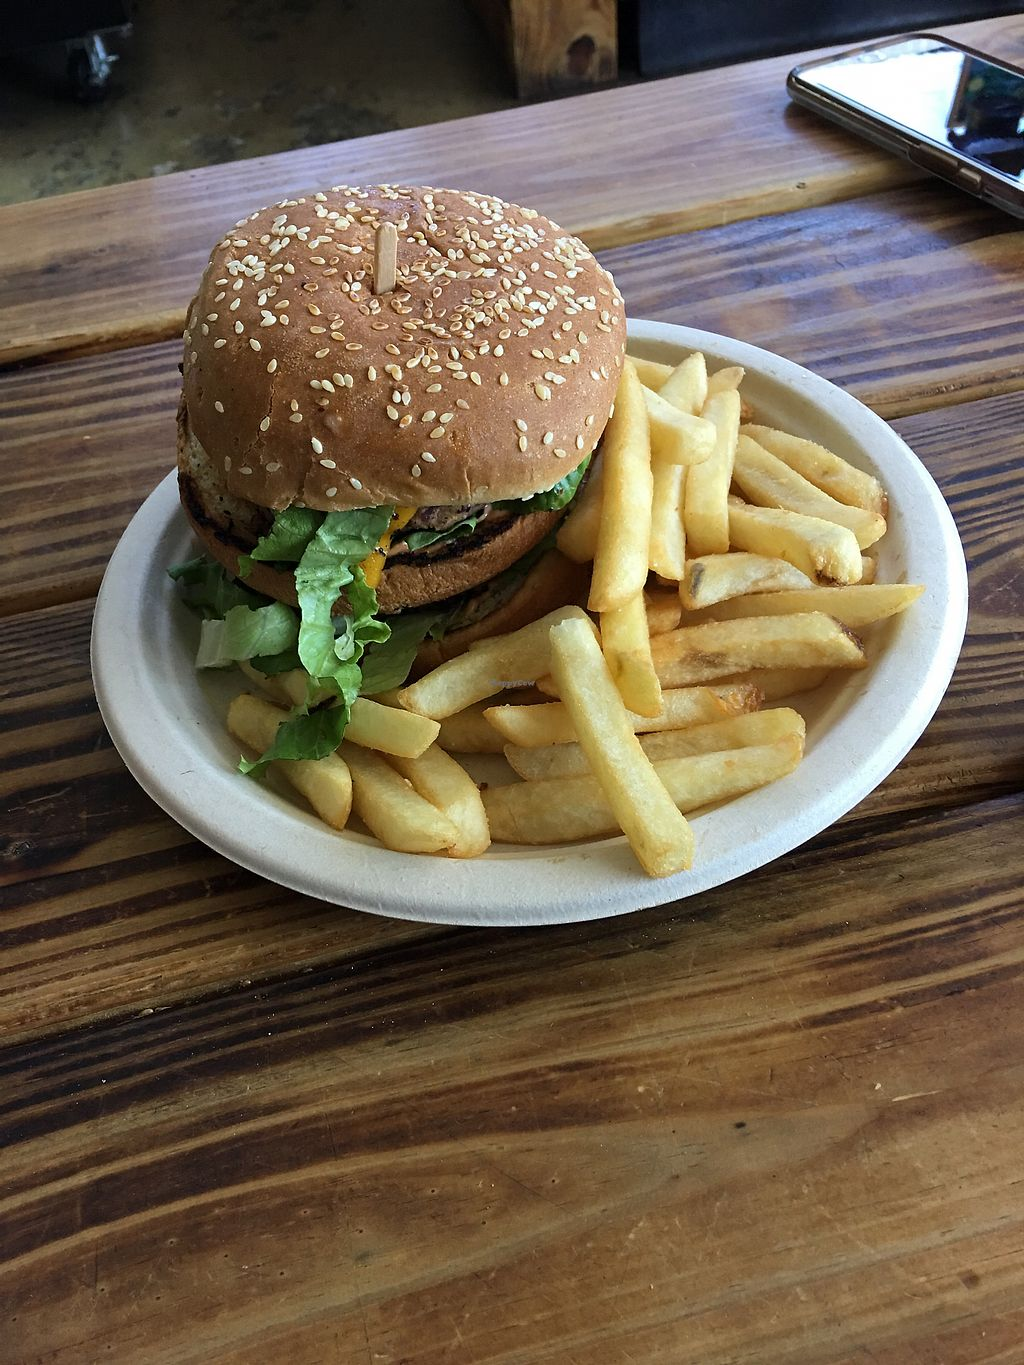 """Photo of Organix Vegan Deli  by <a href=""""/members/profile/Wallice"""">Wallice</a> <br/>Mac Daddy Burger  <br/> September 9, 2017  - <a href='/contact/abuse/image/41816/302748'>Report</a>"""